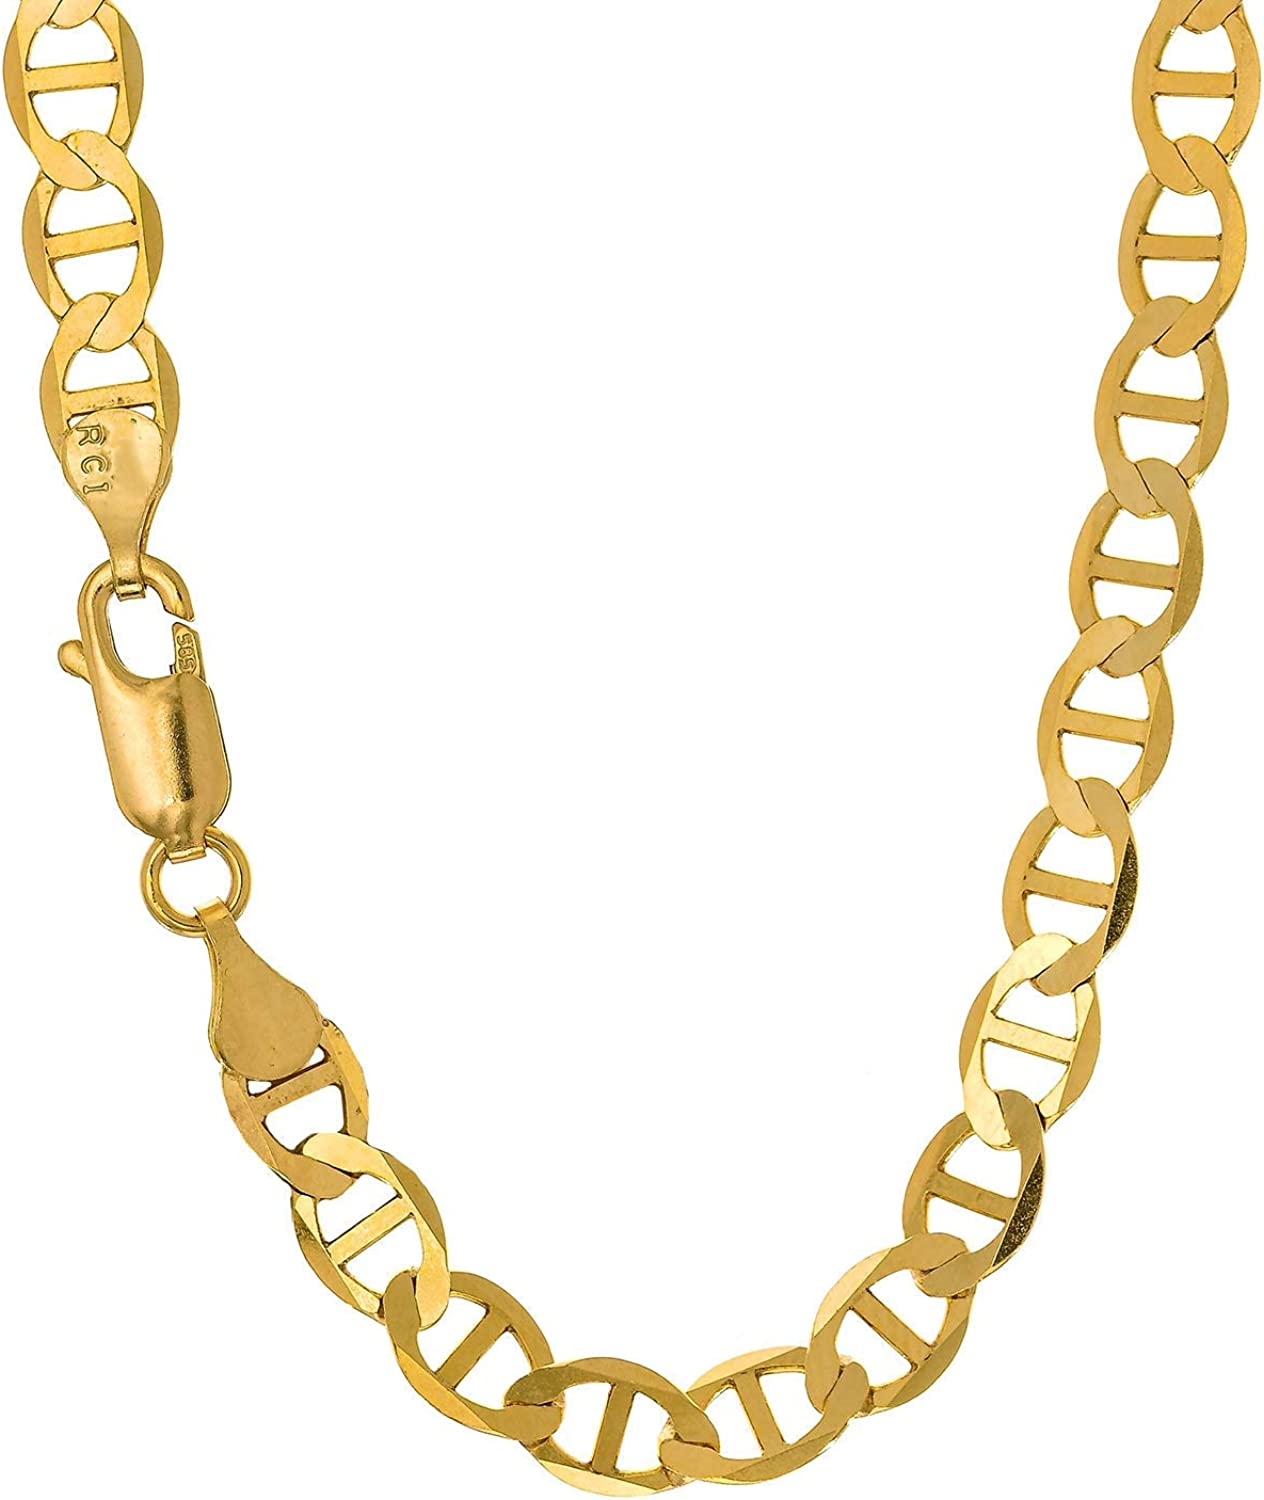 JewelStop 10k Solid Yellow Gold 4.5mm Mariner Chain Necklace - 16